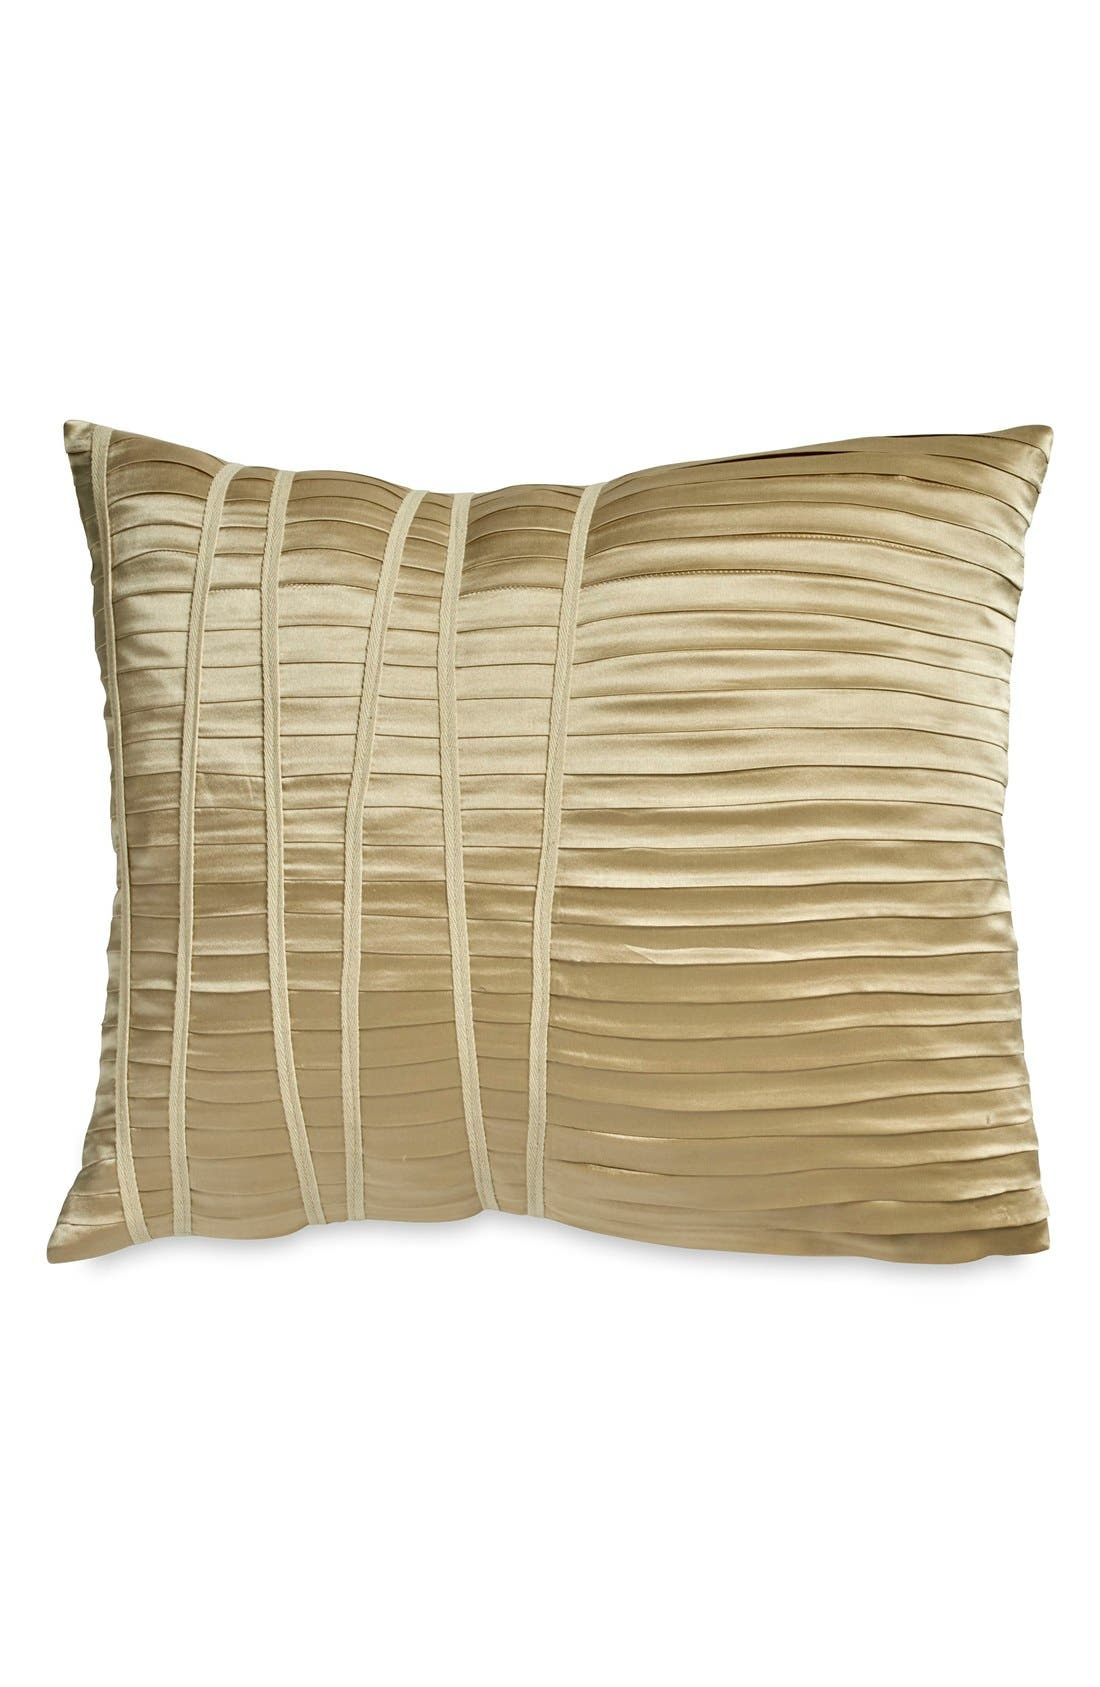 Donna Karan Collection 'Reflection' Accent Pillow